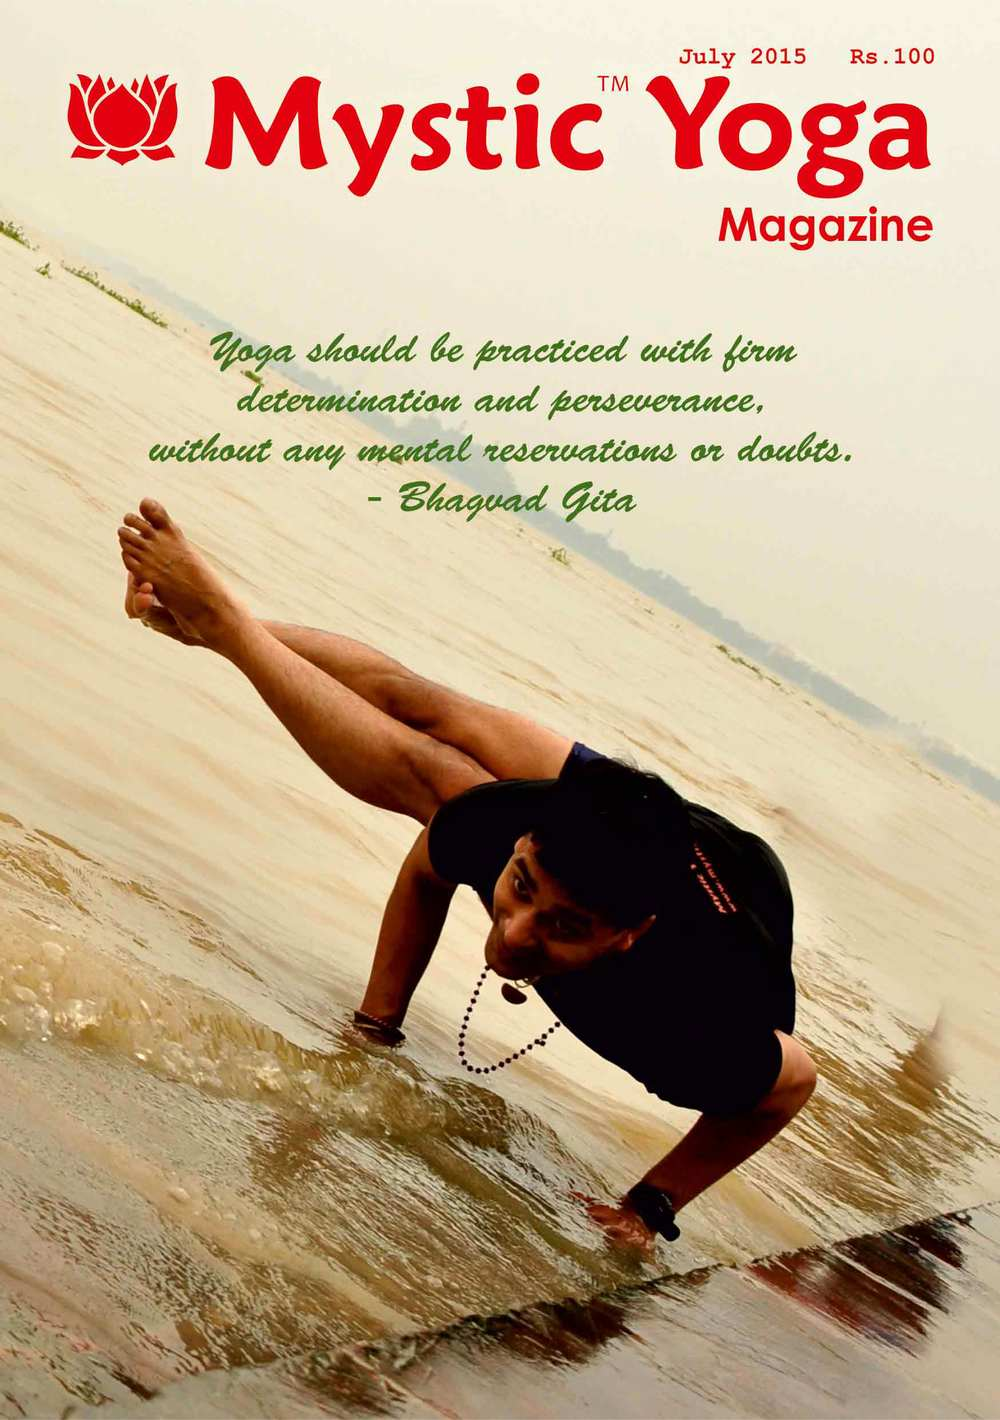 Mystic Yoga Magazine - July 2015